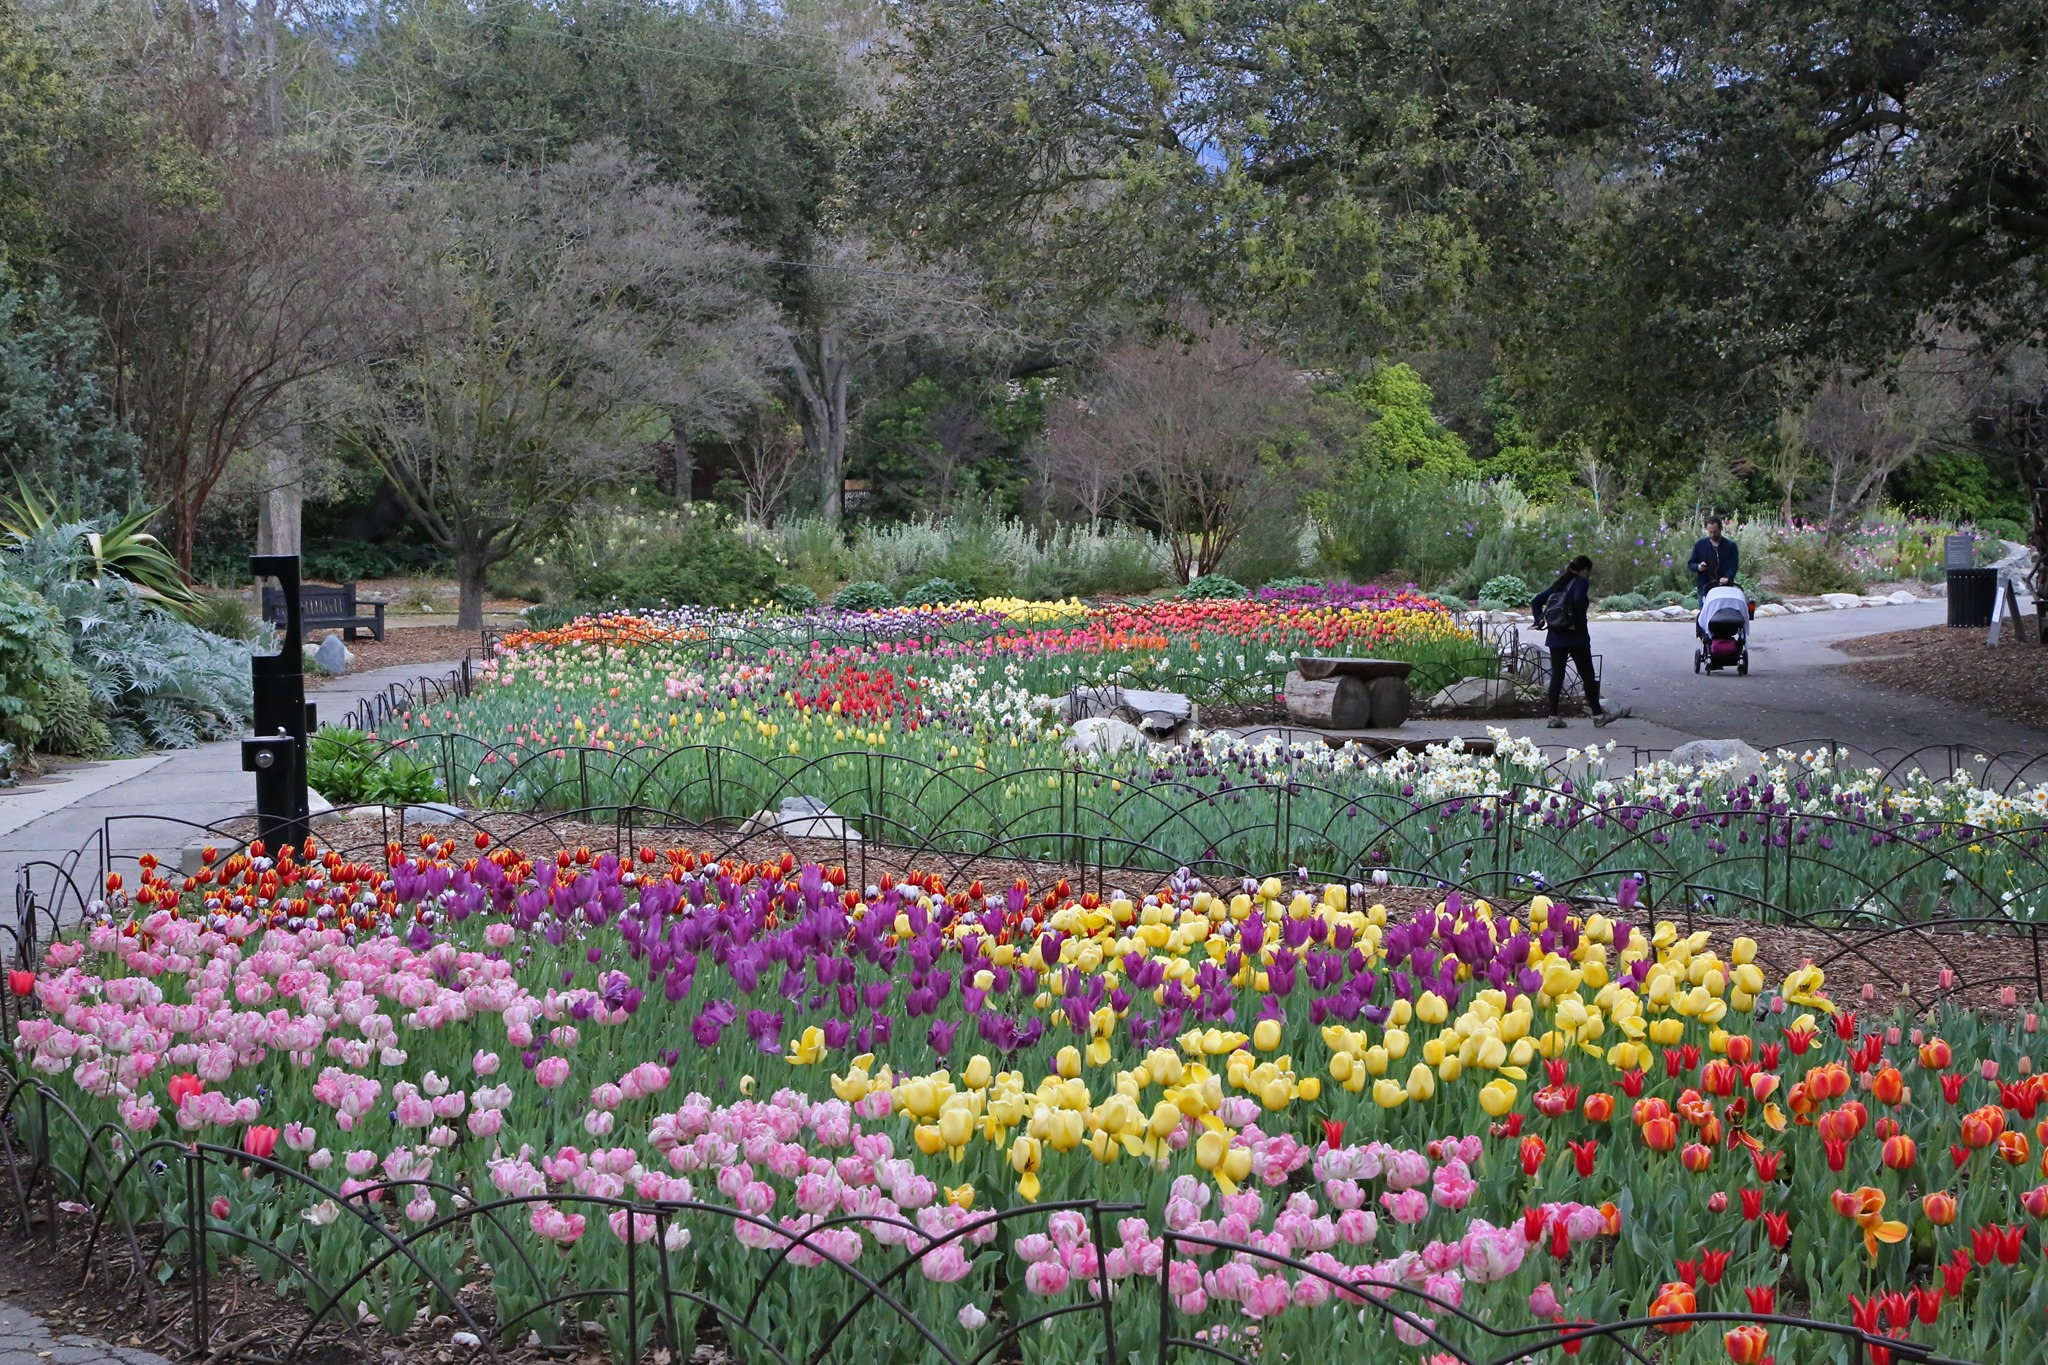 Take A Virtual Tour Through A Sea Of More Than 30,000 Tulips With Descanso Gardens In Southern California